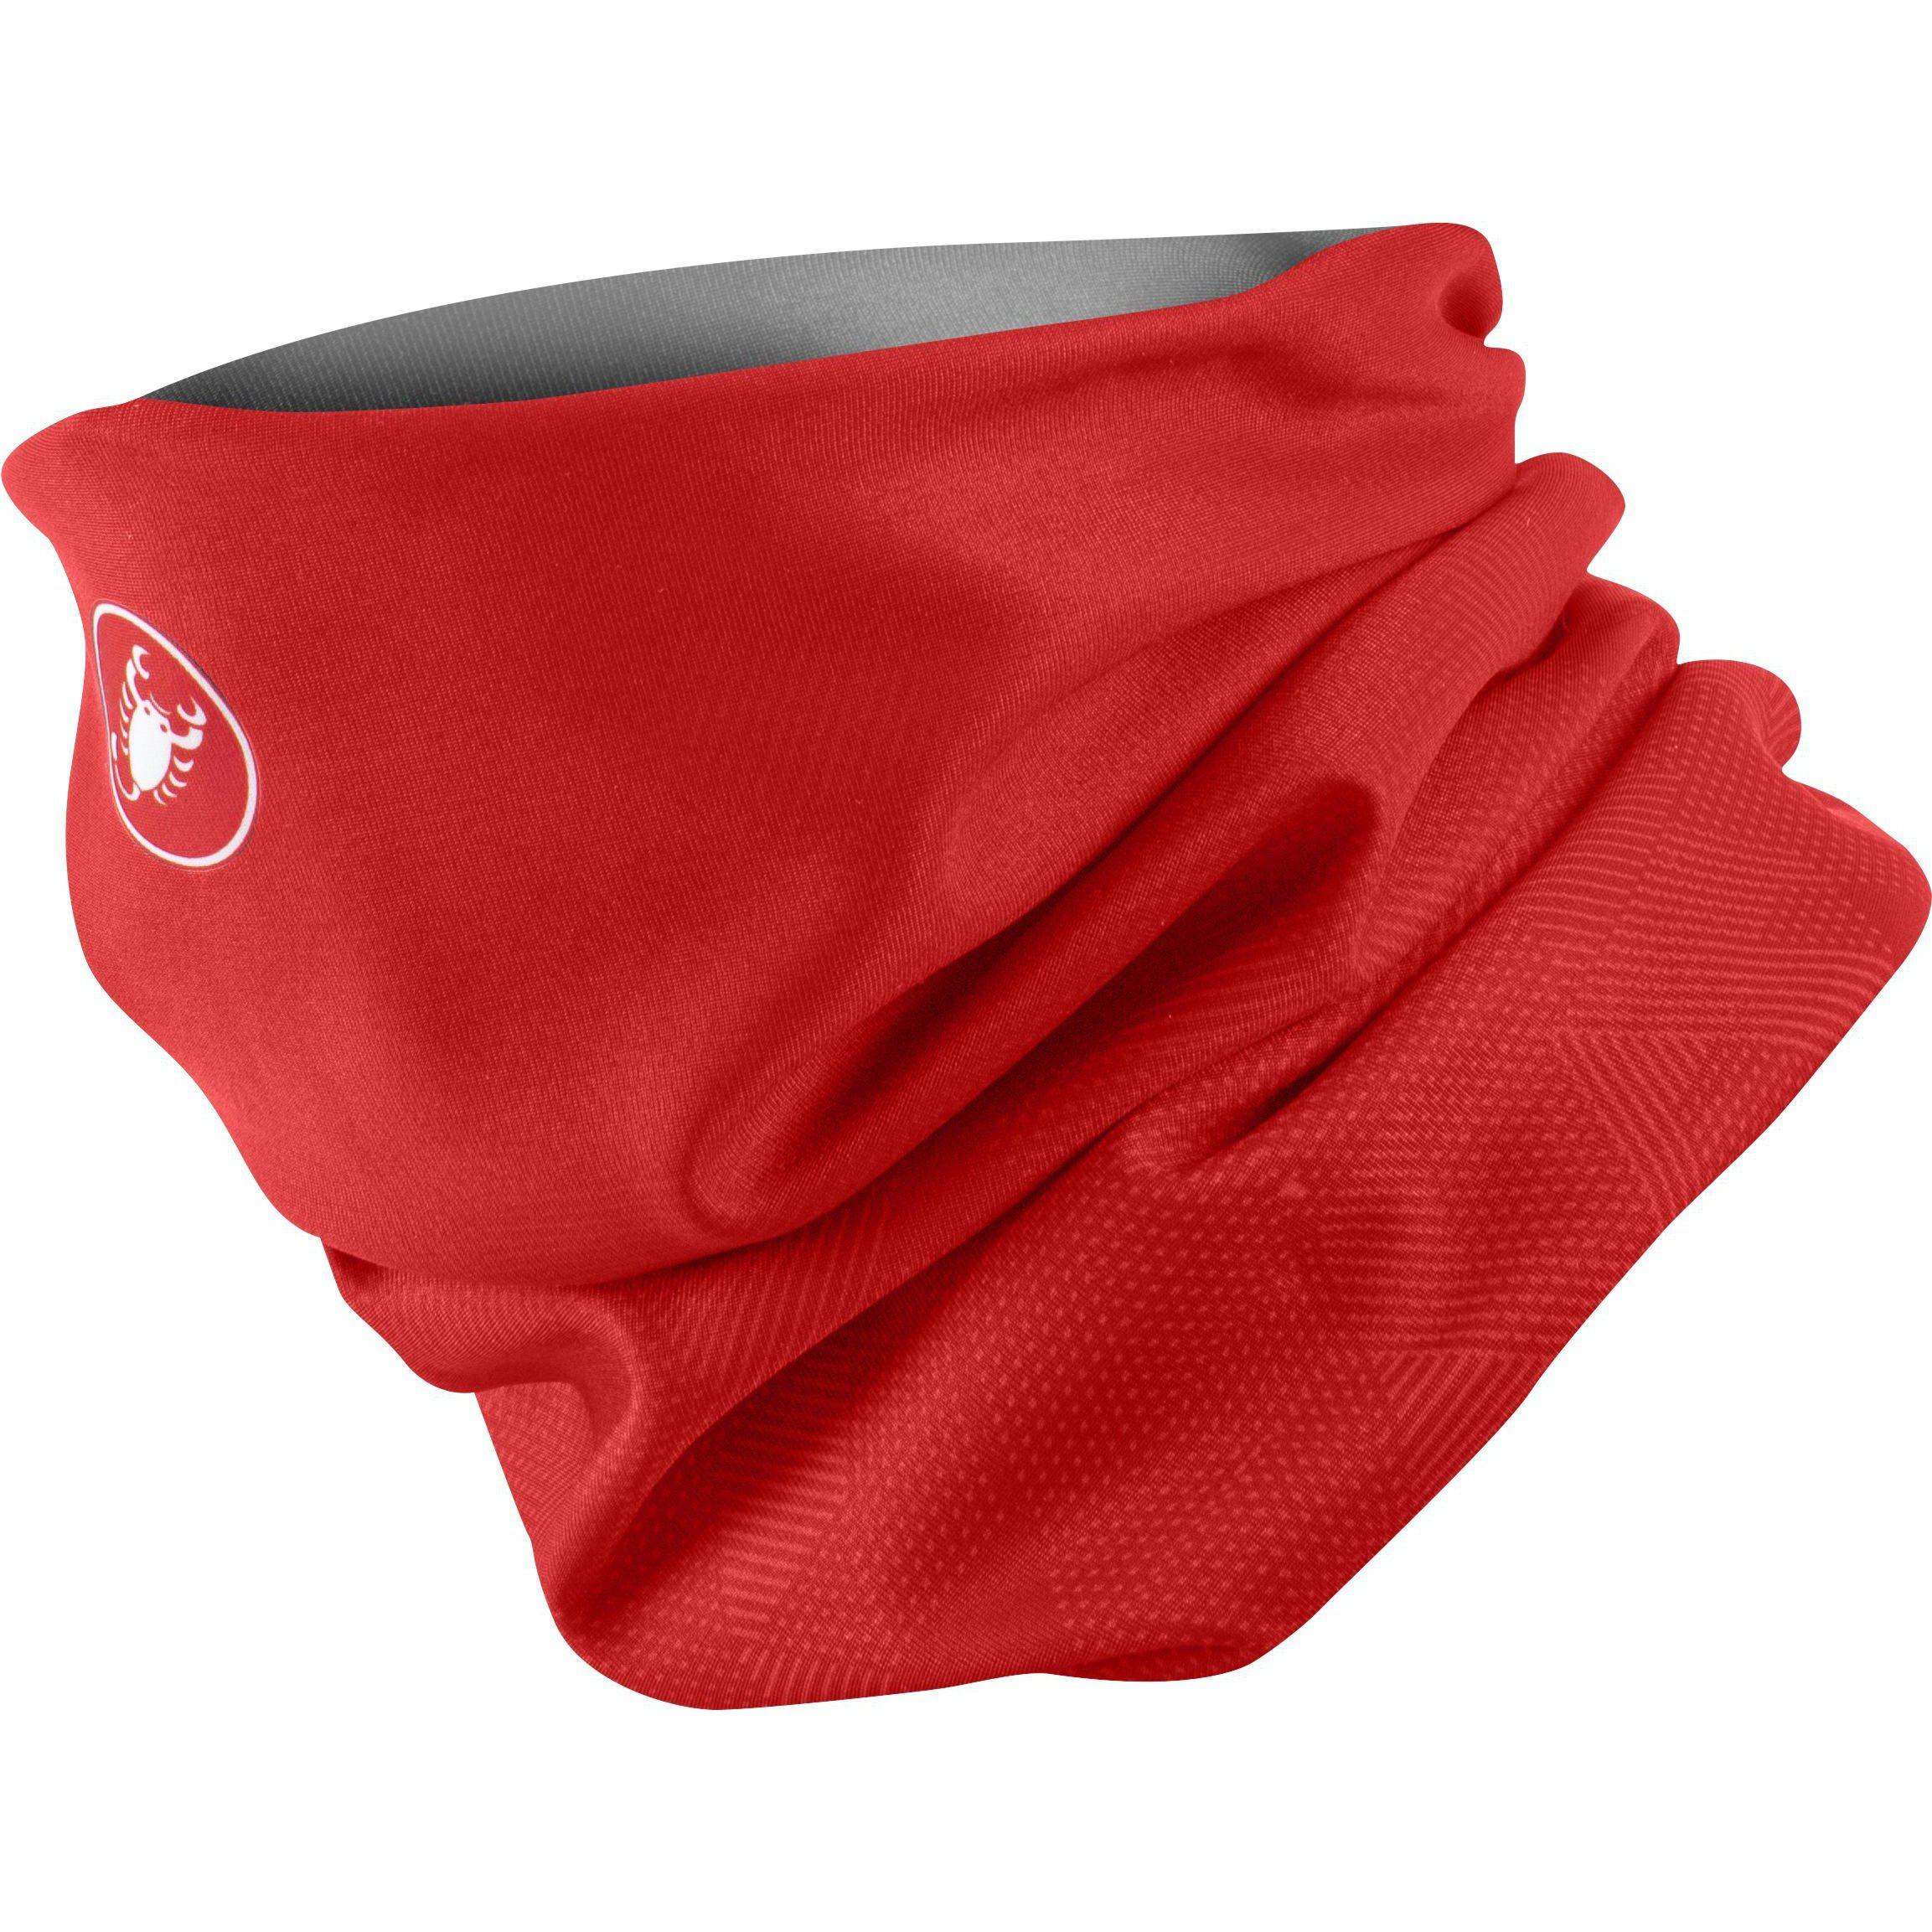 Castelli-Castelli Pro Thermal Head Thingy-Red-UNI-CS205490238-saddleback-elite-performance-cycling